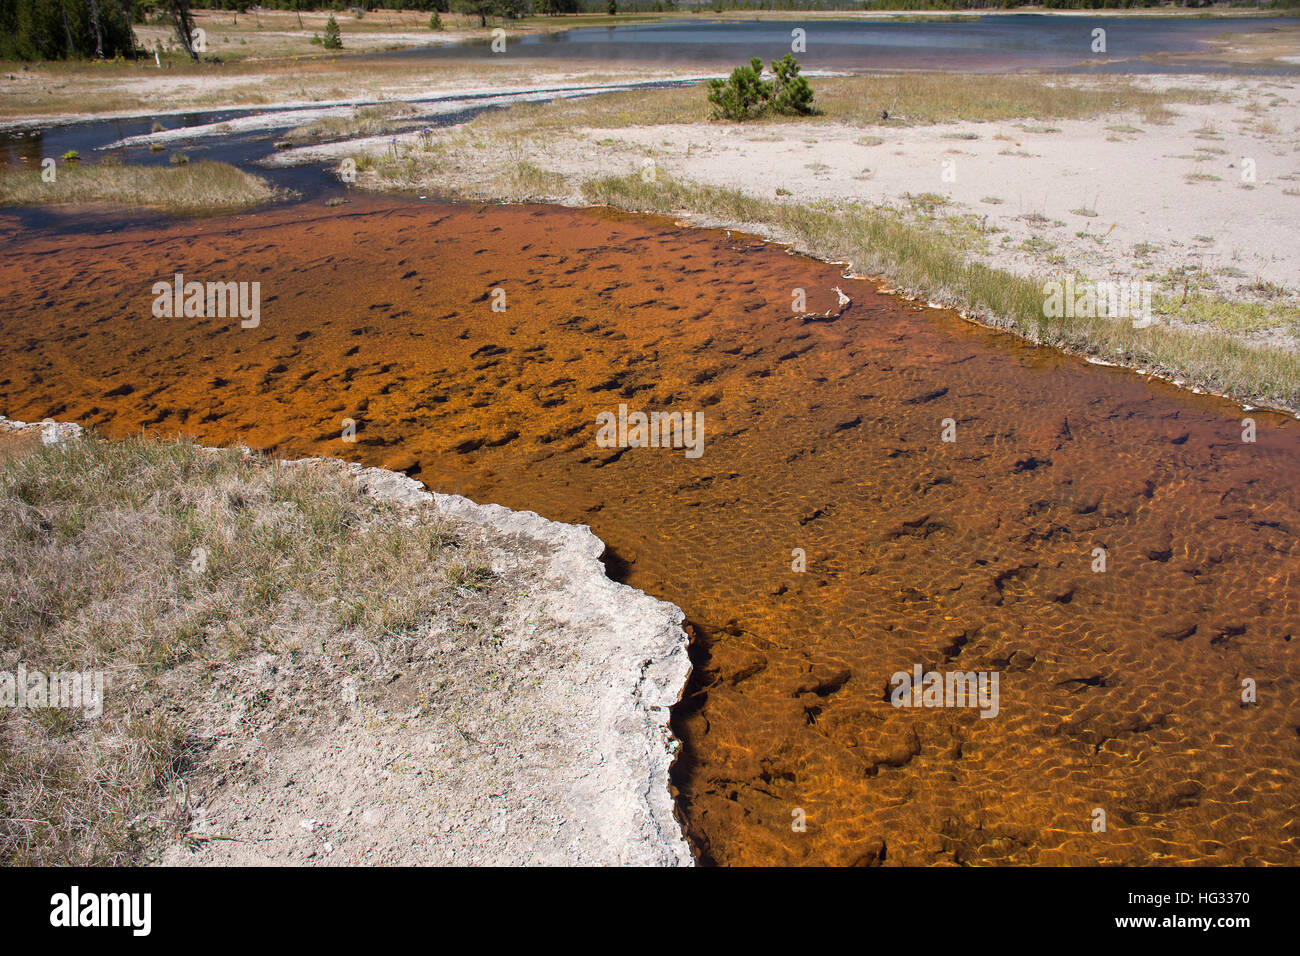 A reddish-orange stream flowing into Hot Lake in Yellowstone National Park. - Stock Image